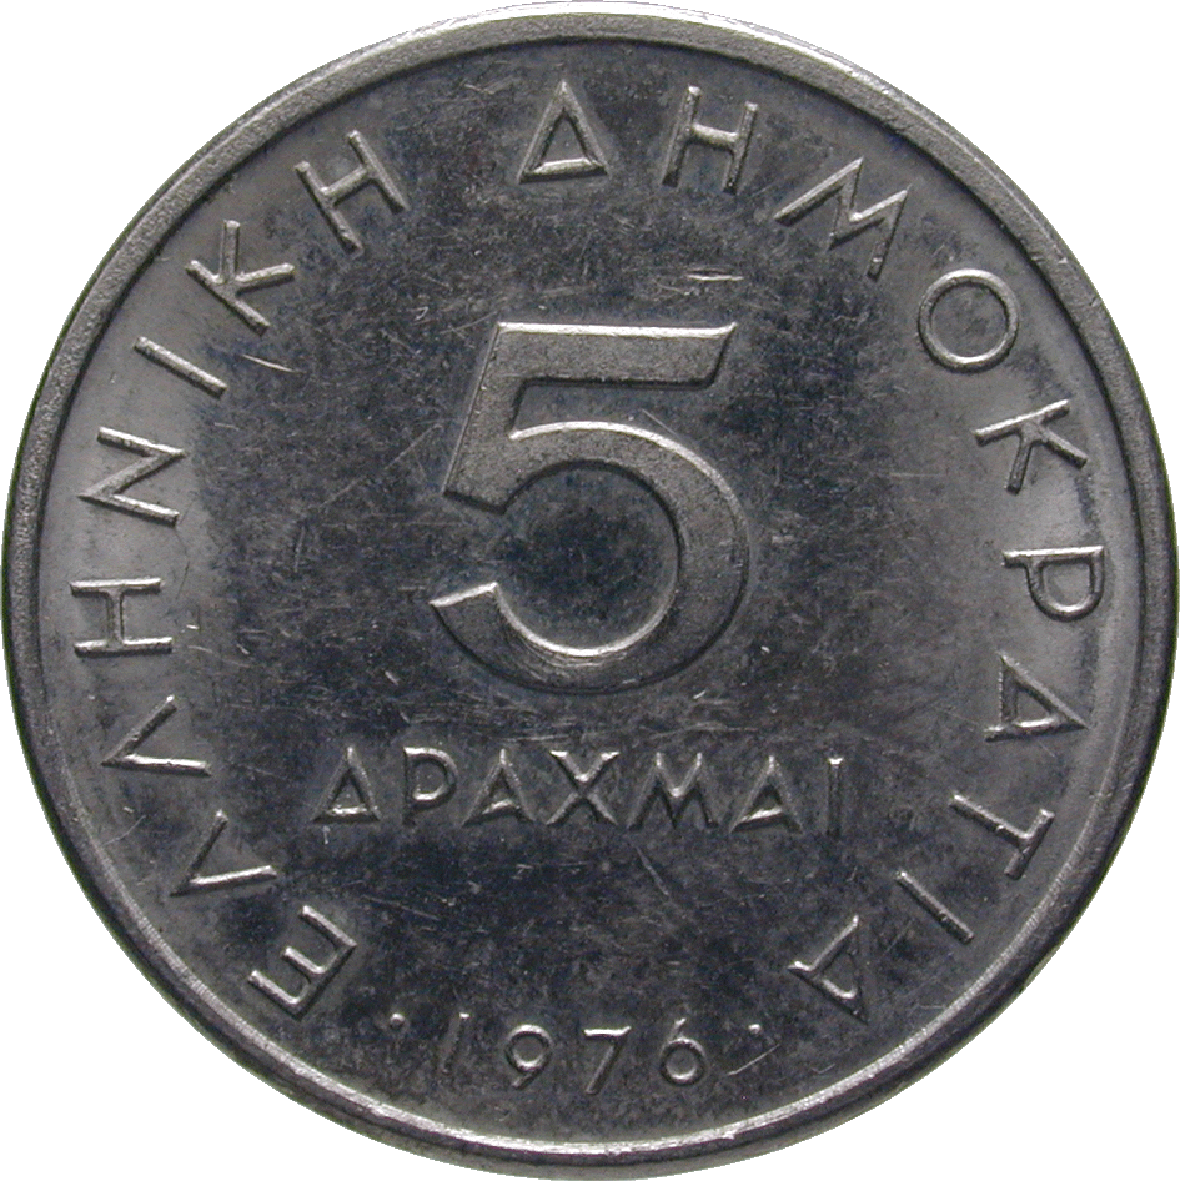 Republic of Greece, 5 Drachmai 1976 (obverse)